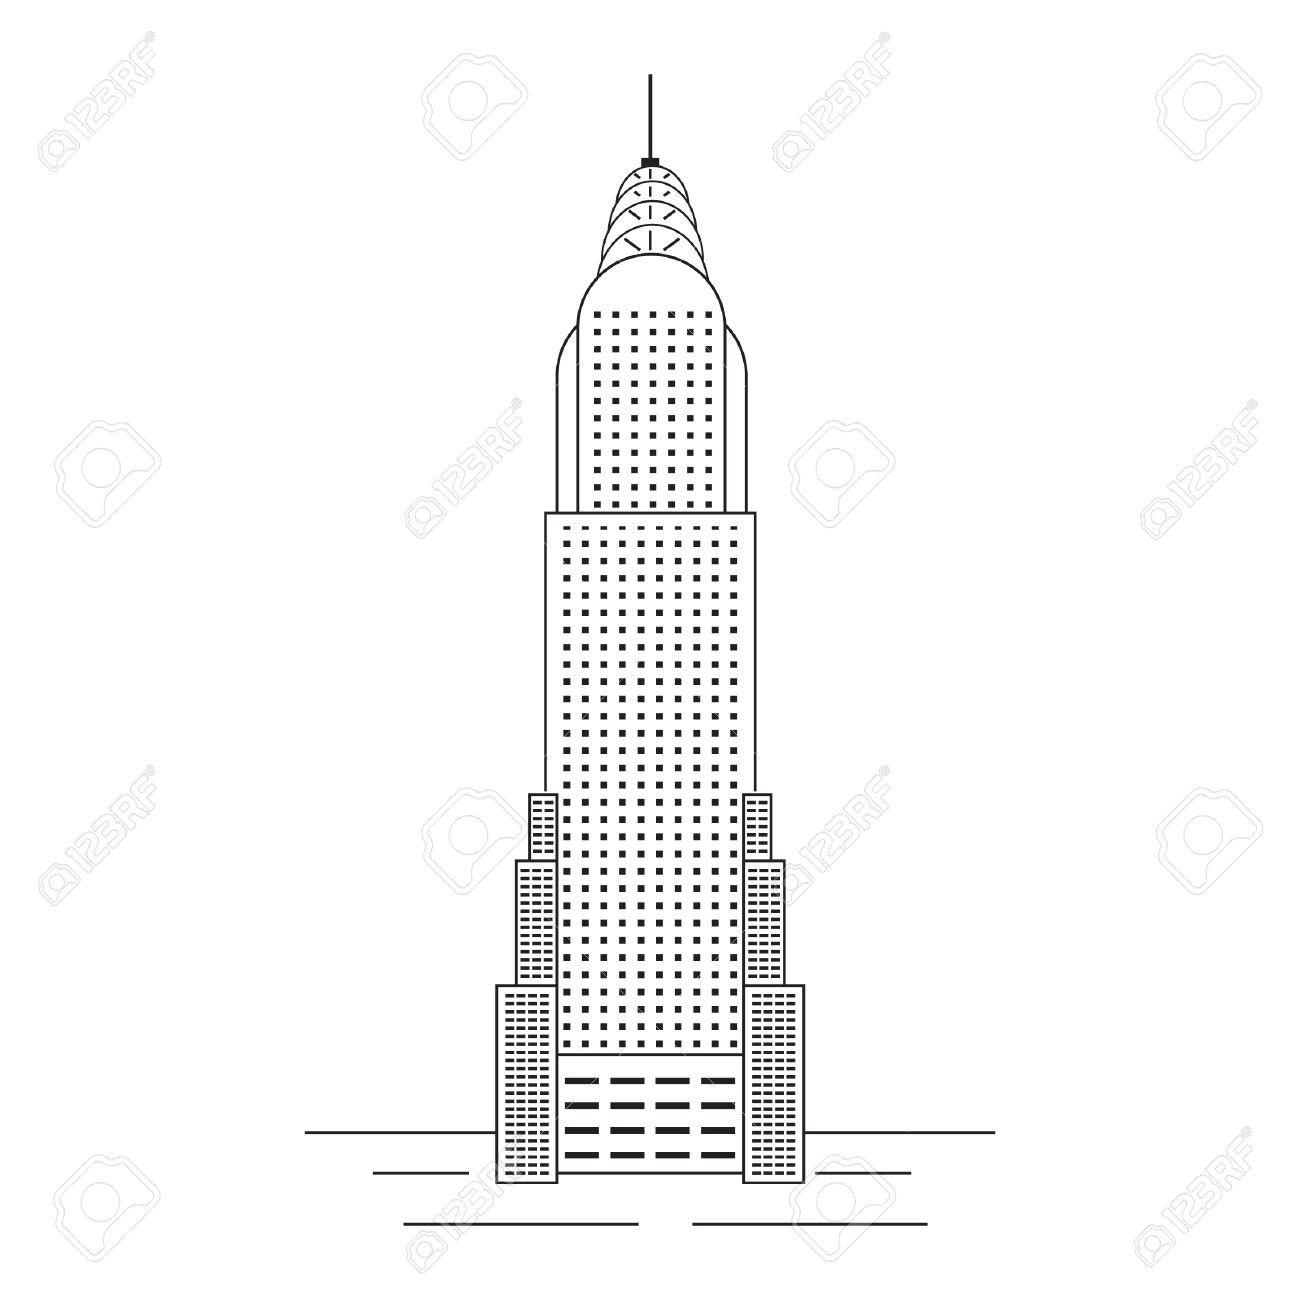 chrysler building royalty free cliparts vectors and stock rh 123rf com chrysler building vector free Chrysler Building at Night